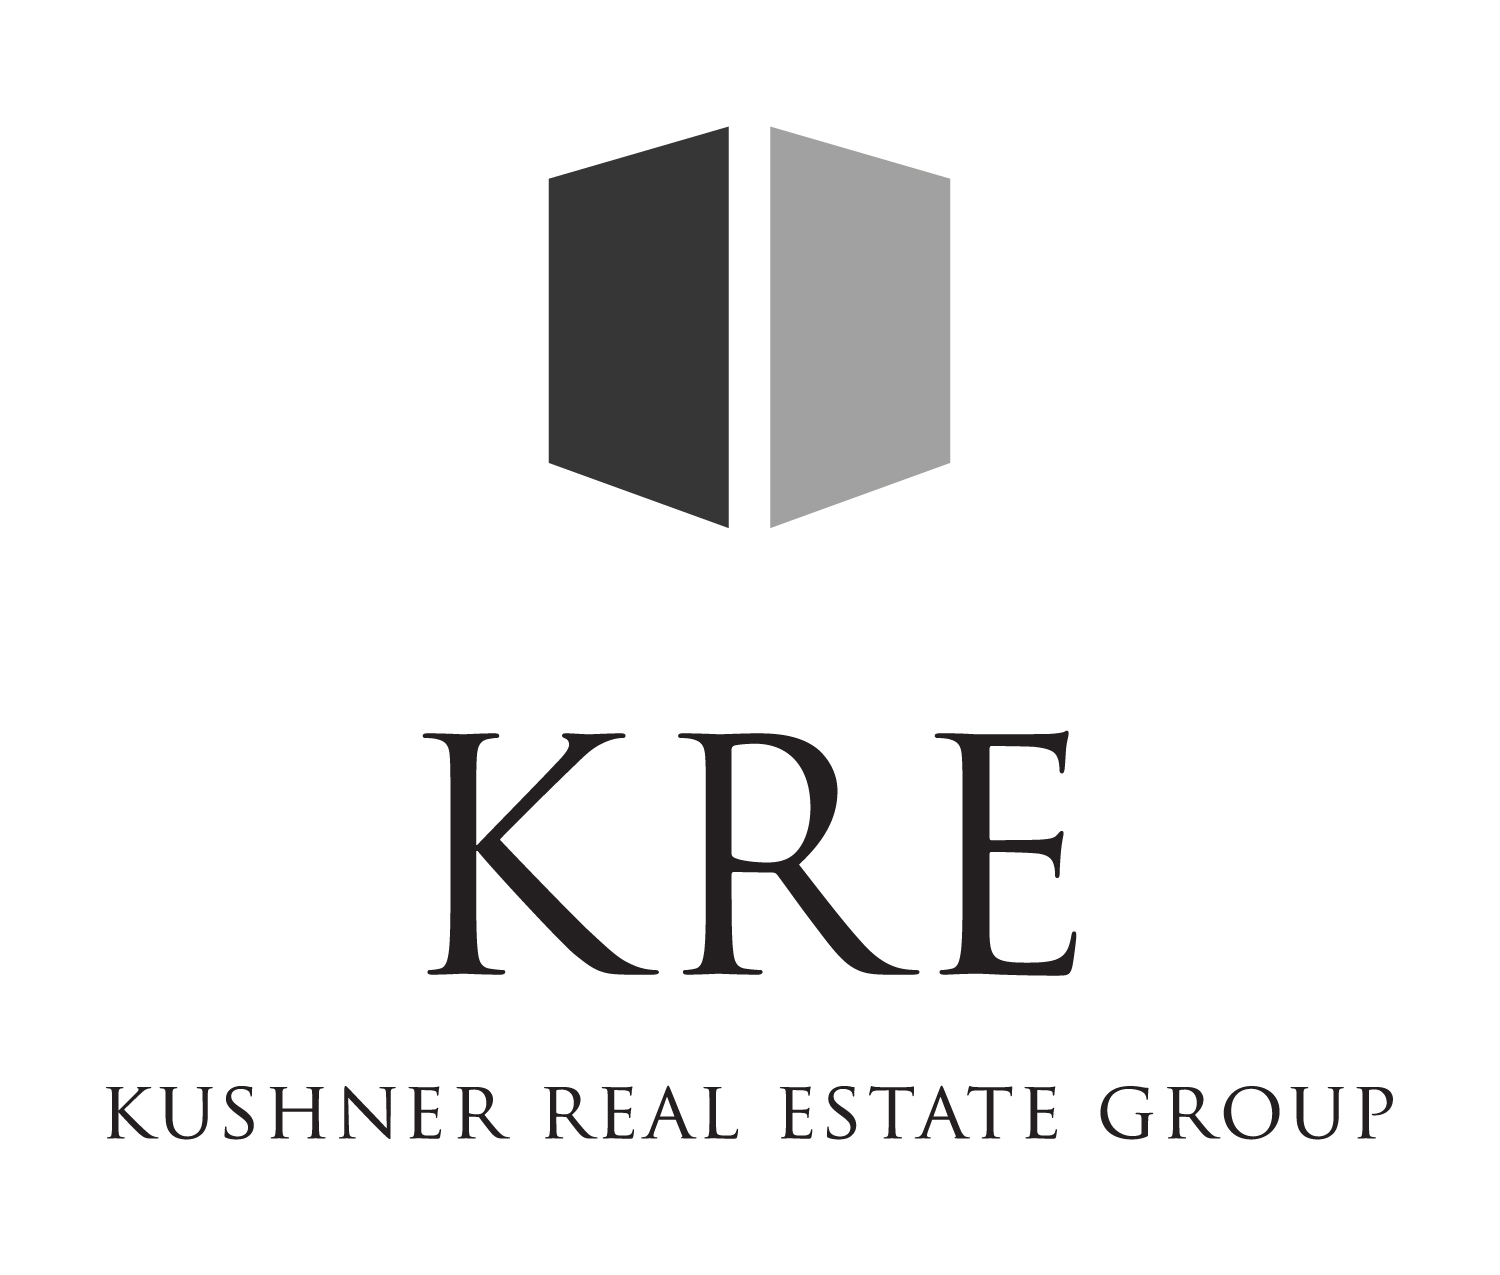 Kushner Real Estate Group